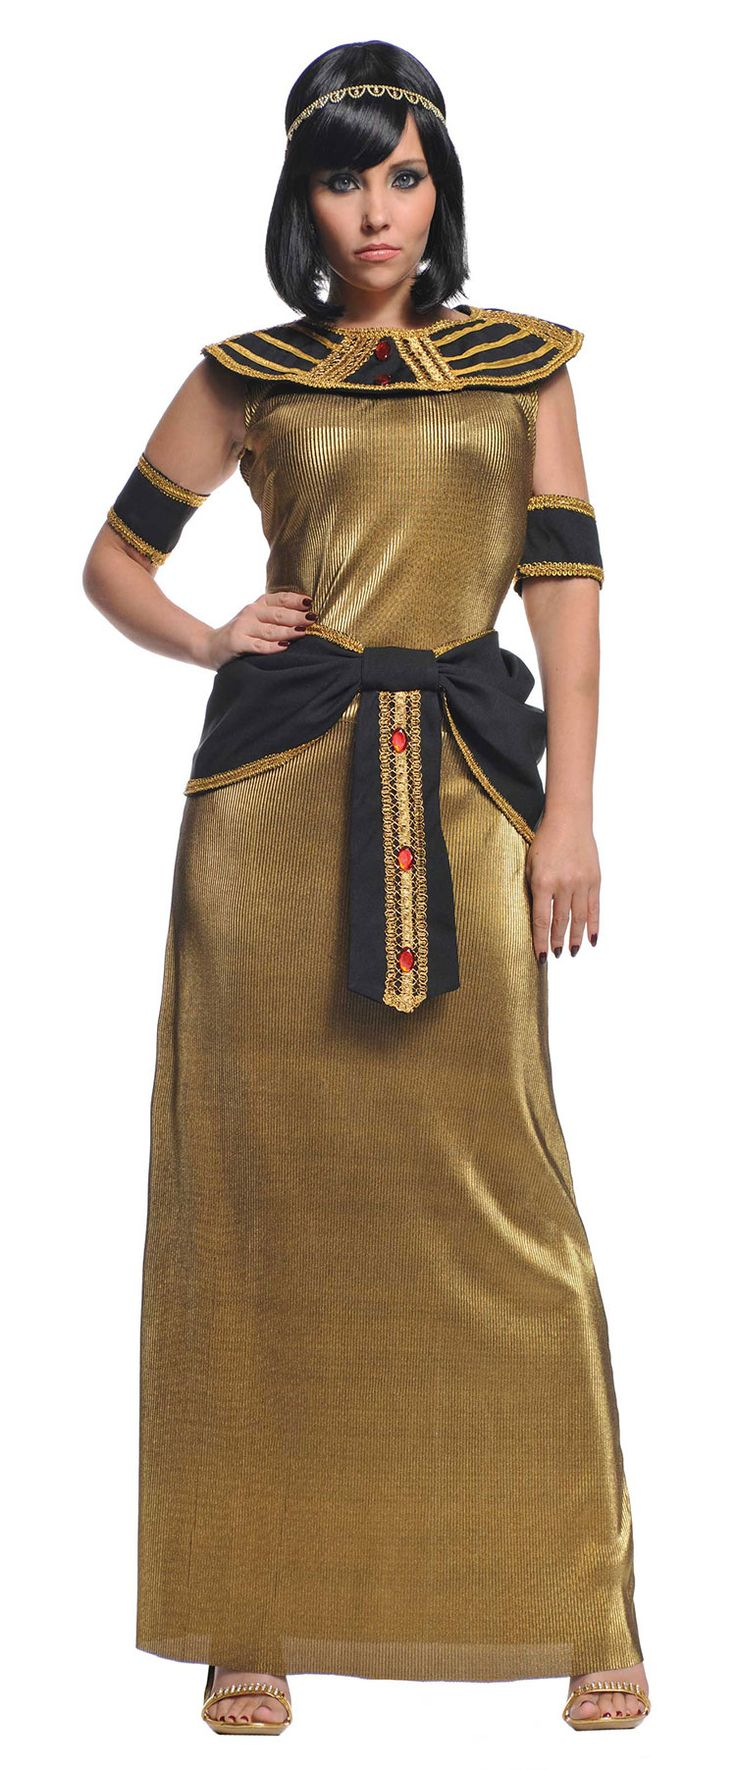 Home gt gt cleopatra costumes gt gt jewel of the nile egyptian adult - Find This Pin And More On Diy Halloween Version Queen Of The Nile Cleopatra Costume Egyptian